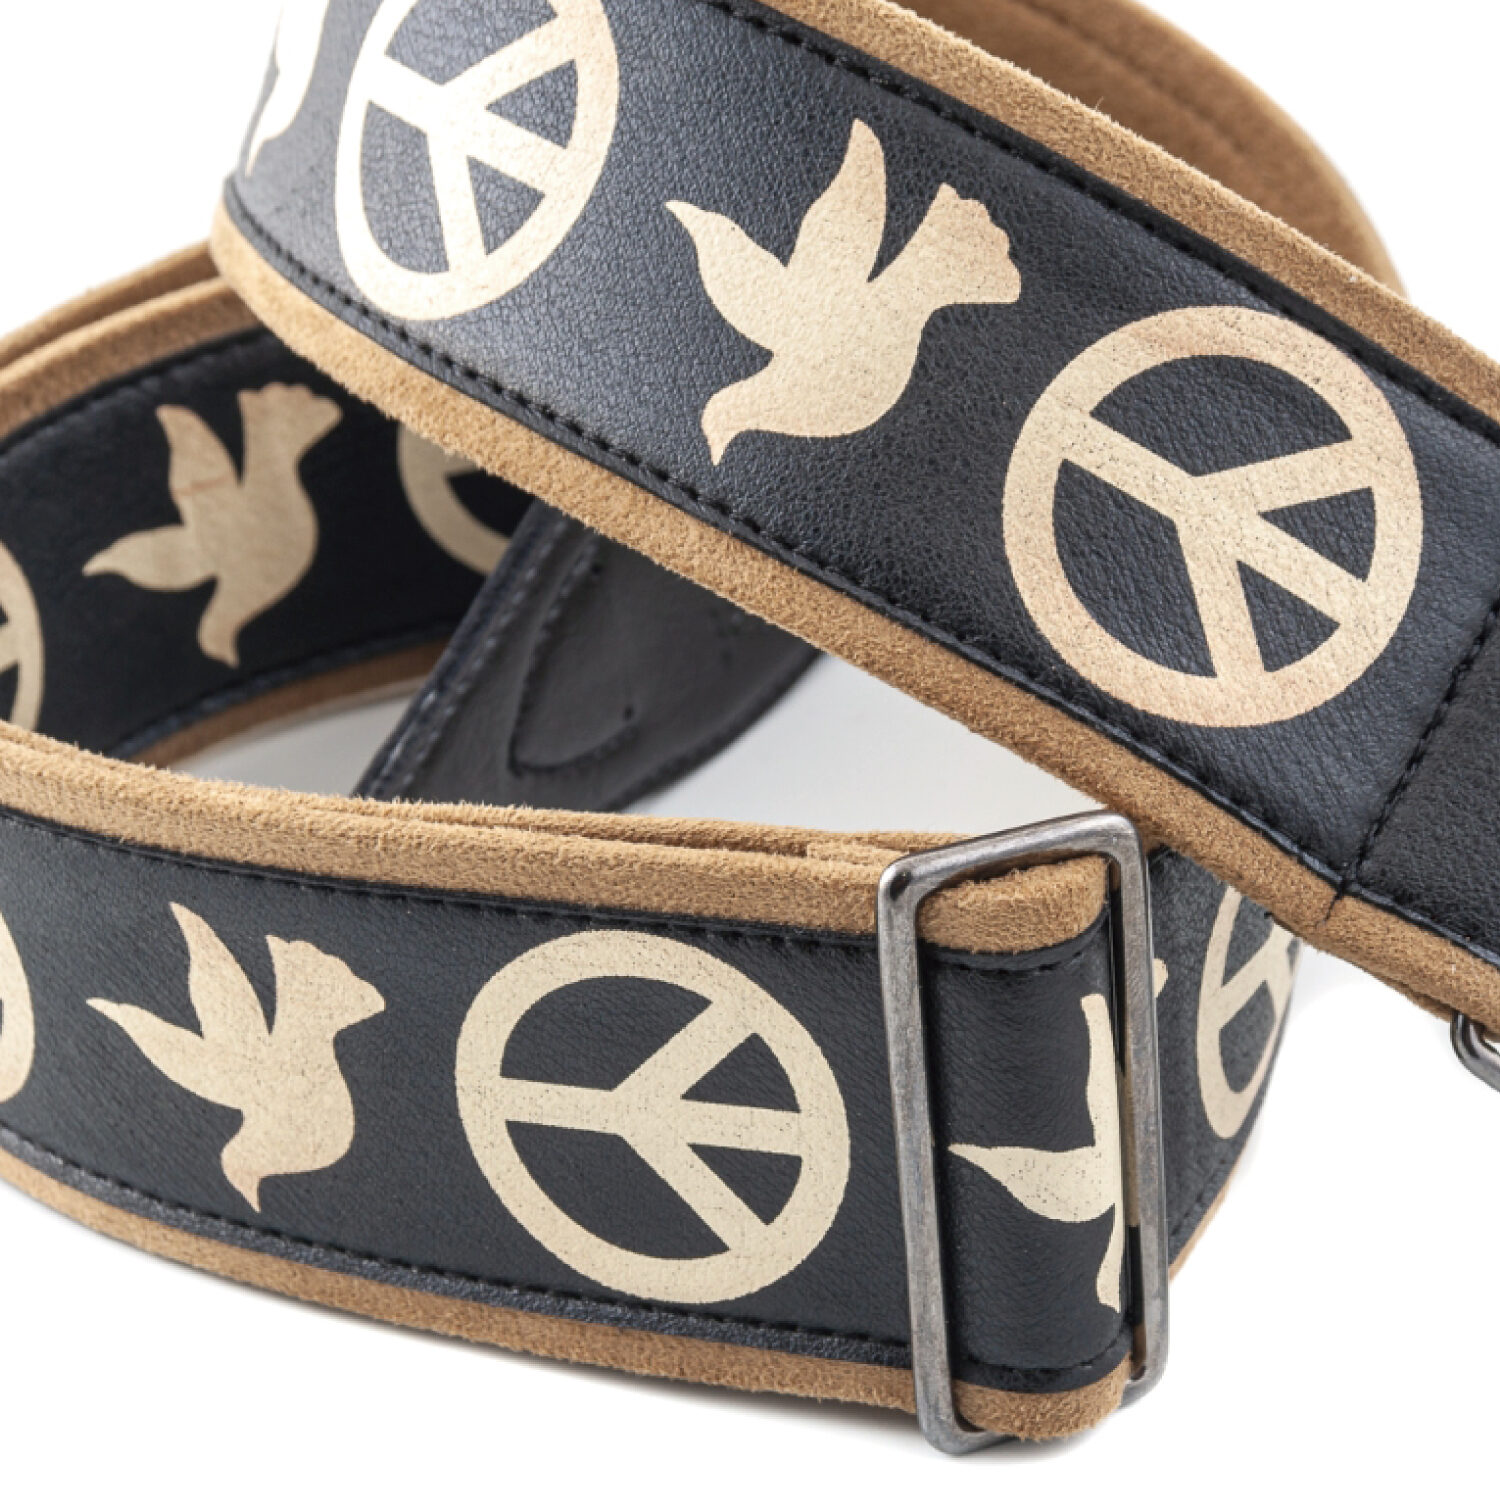 PEACE-AND-DOVES-NEIL-YOUNG-1500_2